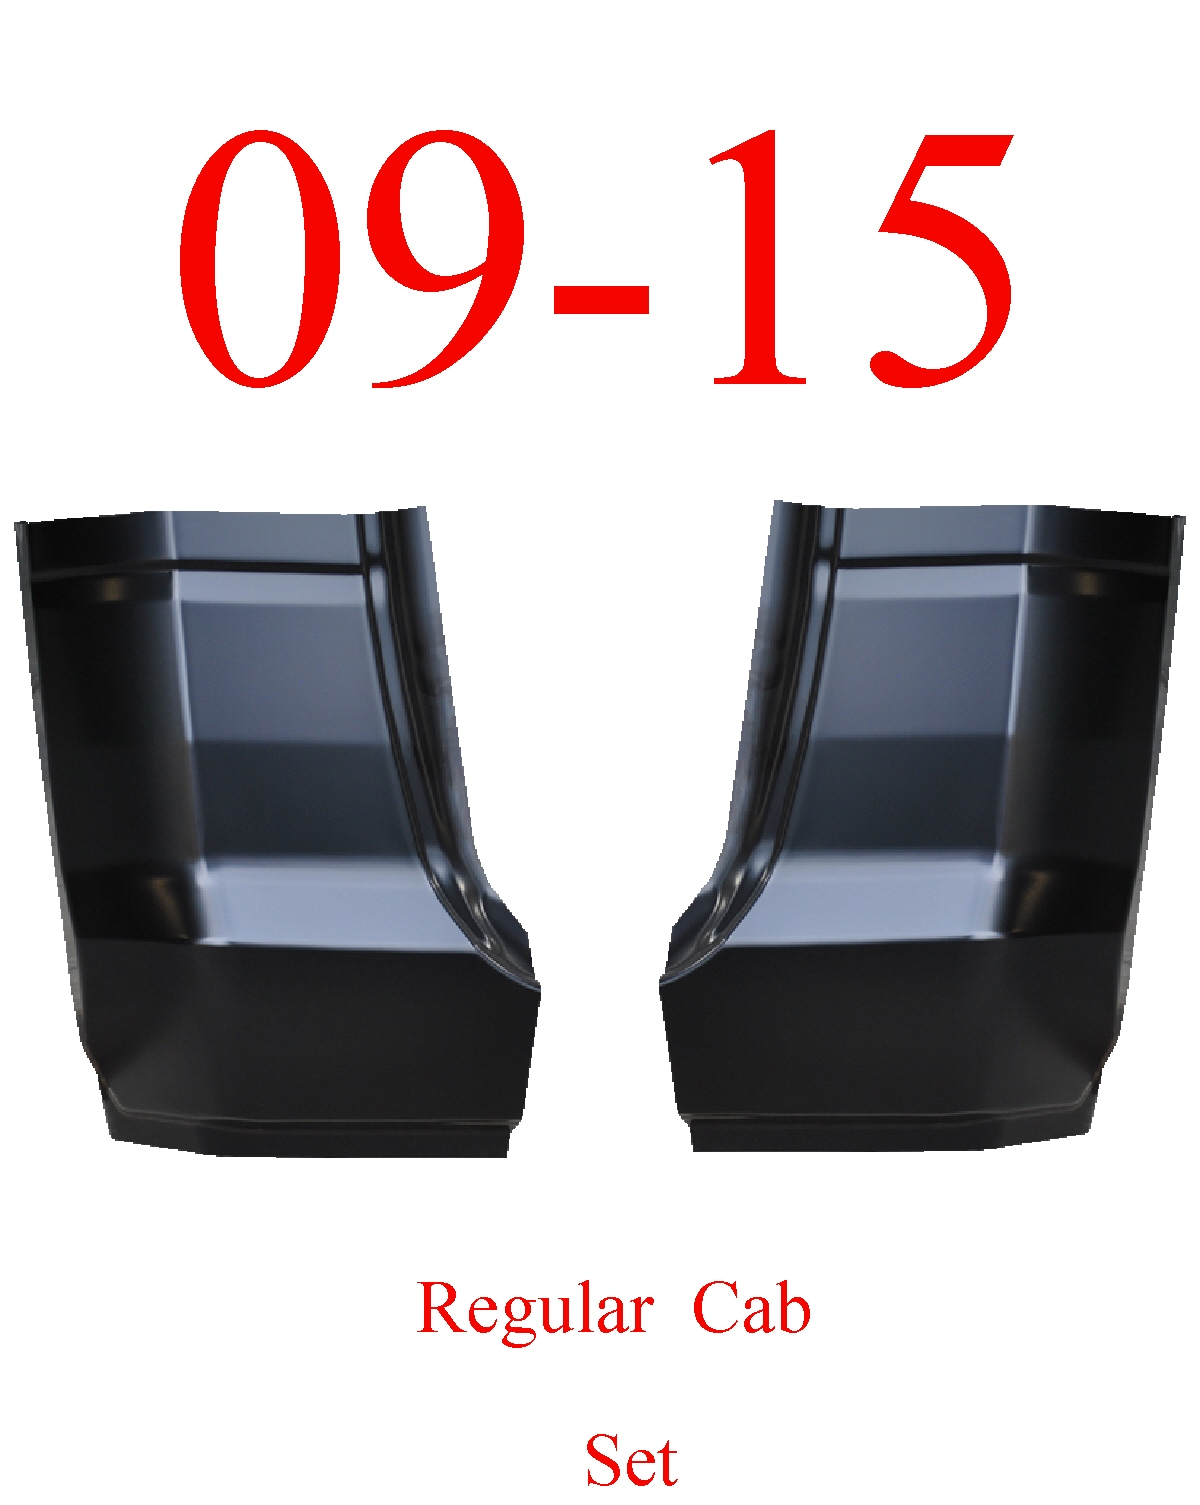 09-15 Ram Regular Cab Corner Set